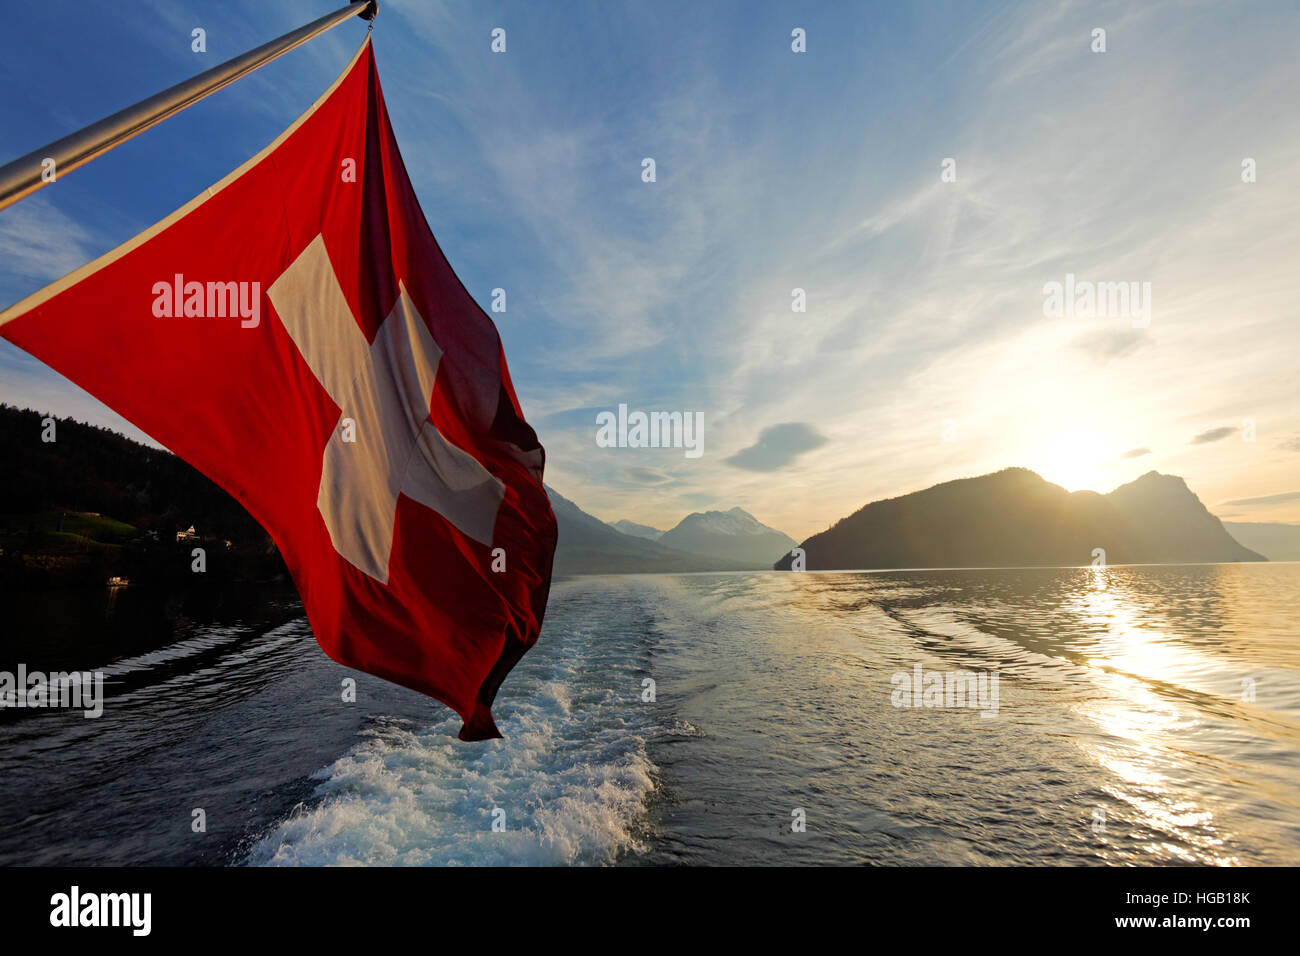 Swiss flag on tour boat cruising Lake Lucerne as sun sets over the Alp mountains, Switzerland - Stock Image